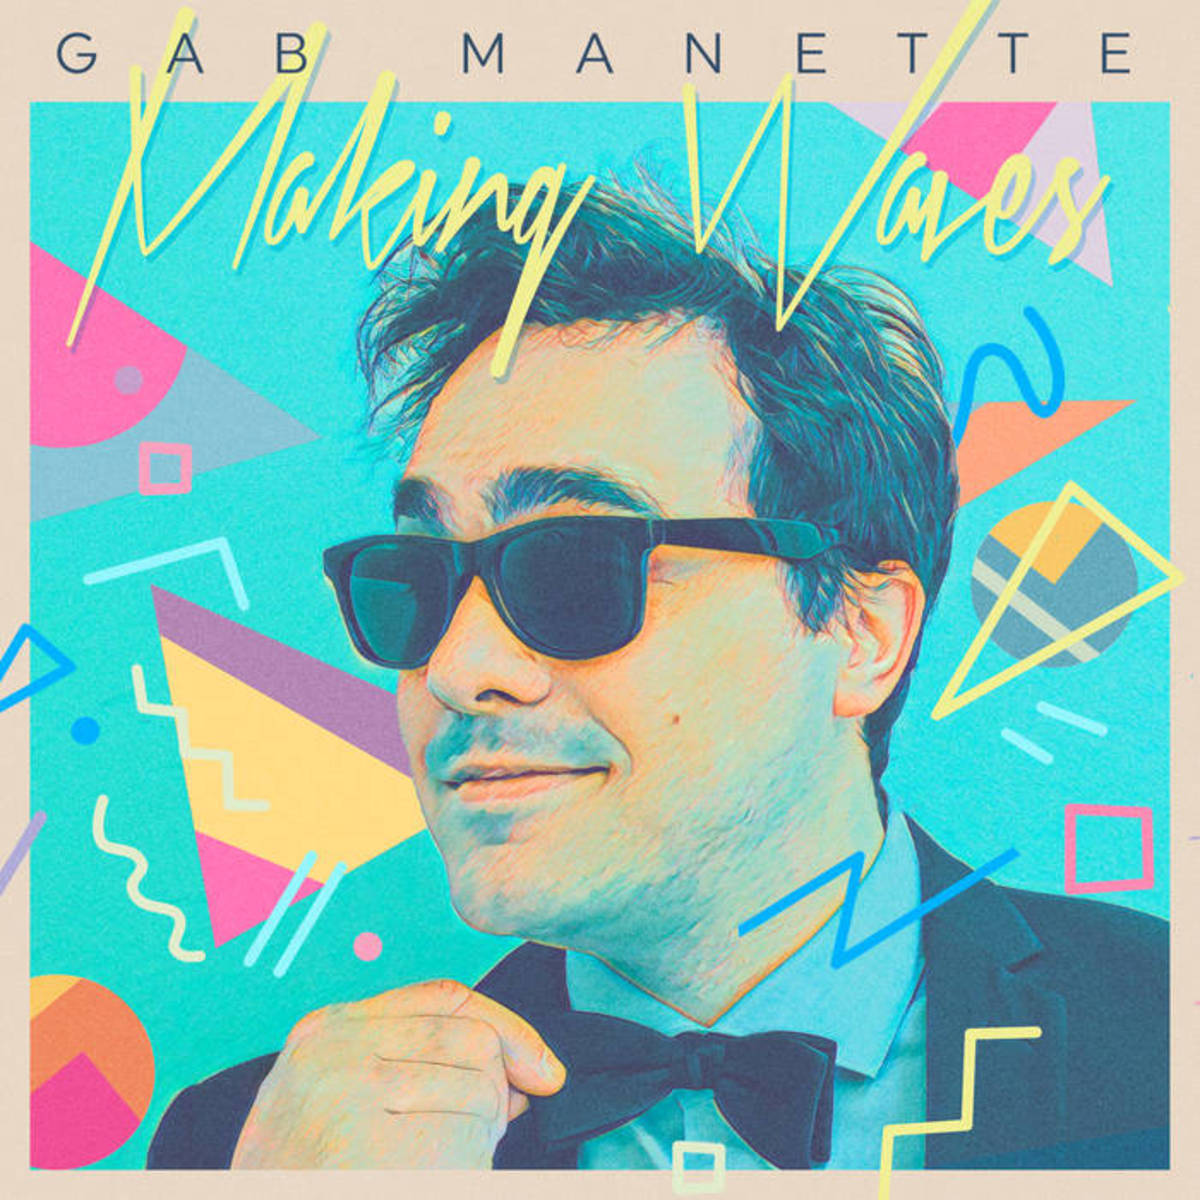 """Synth Album Review: """"Making Waves"""" by Gab Manette"""